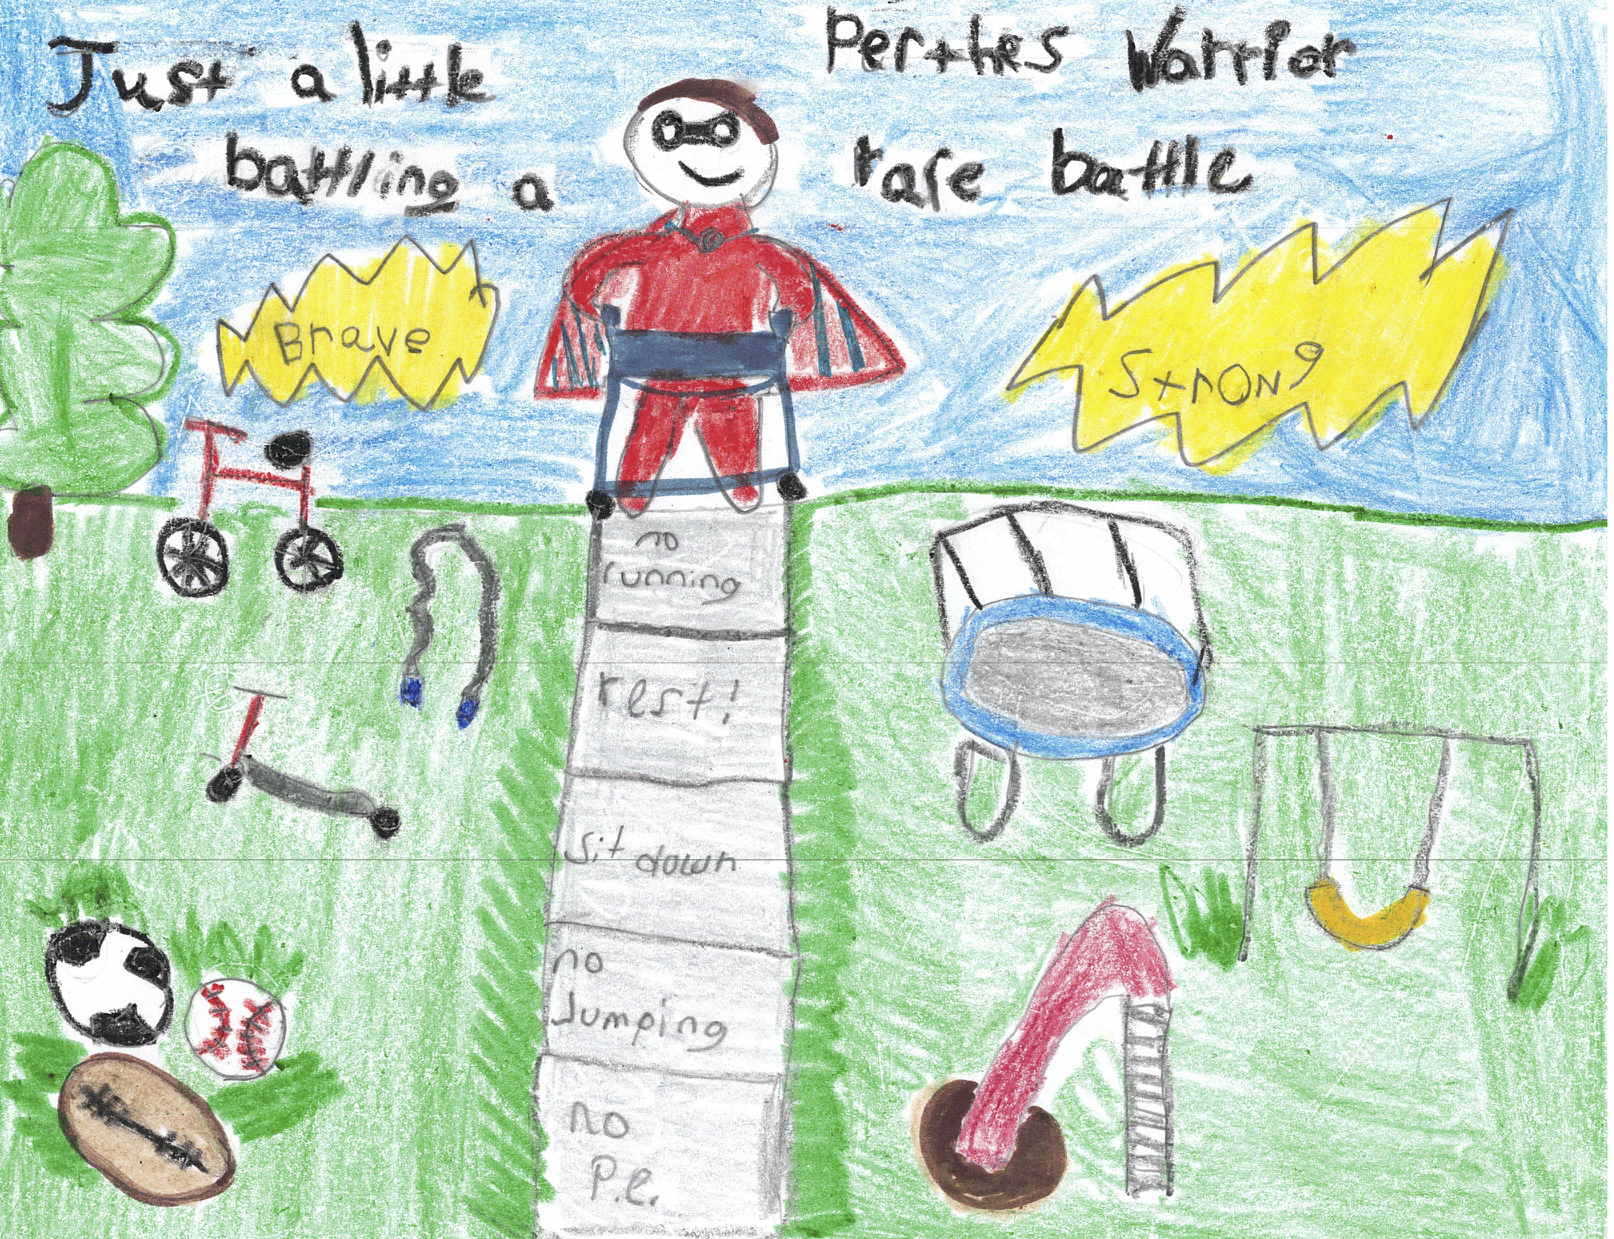 008 - RARE BATTLE by Royce Rodriguez (age 6) in Boaz, Alabama, USA